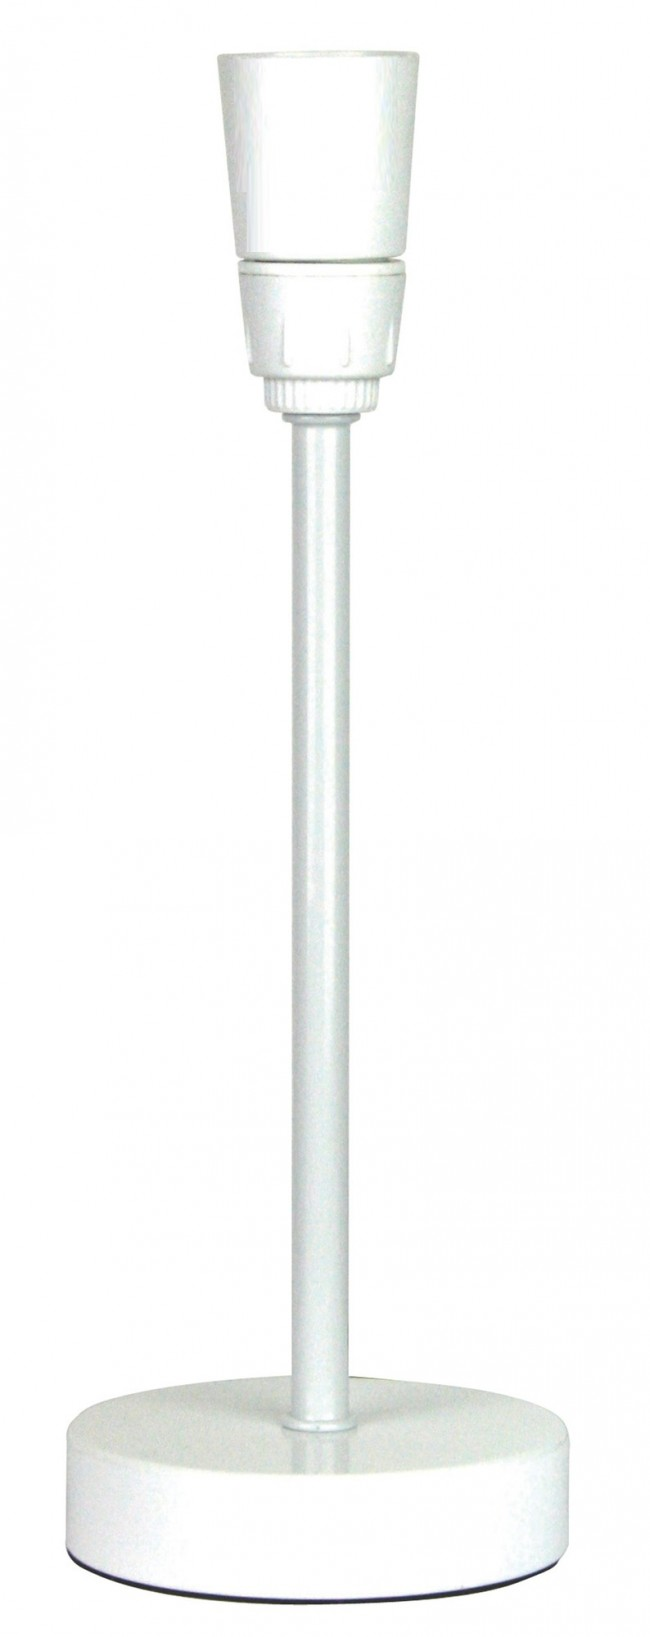 Lighting Australia | Lancet Touch Lamp Base Only in White ...